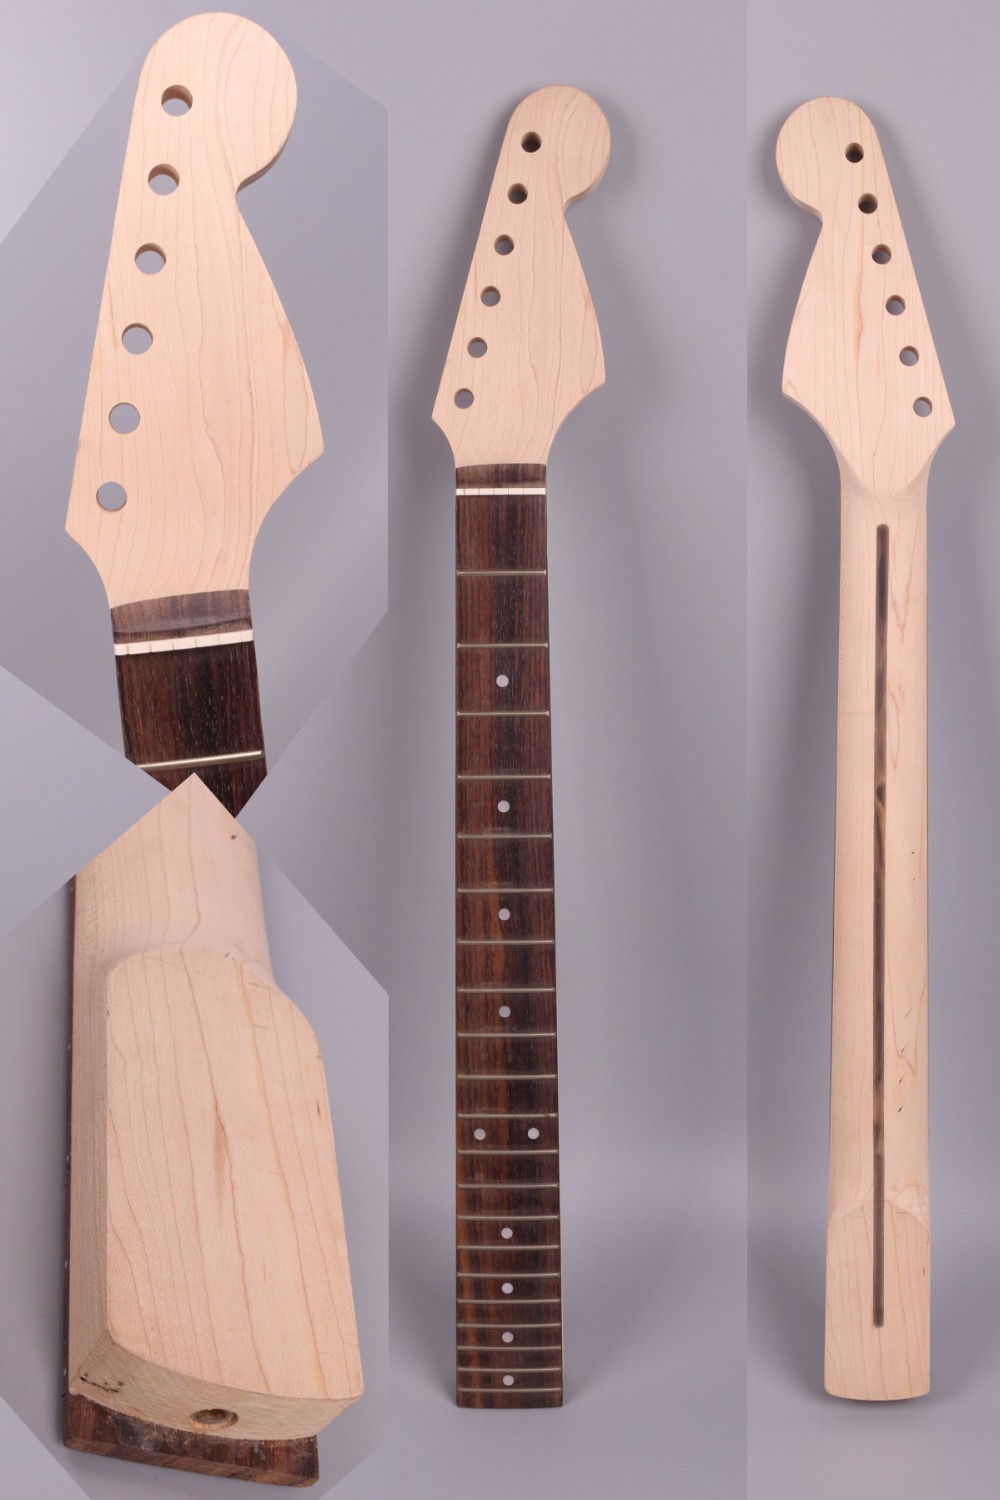 ST electric guitar neck 21 fret 25.5'' rose wood maple Fretboard Truss Rod #19 high quality electric guitar neck truss rod adjustmrnt 440mm guitar parts wholesale